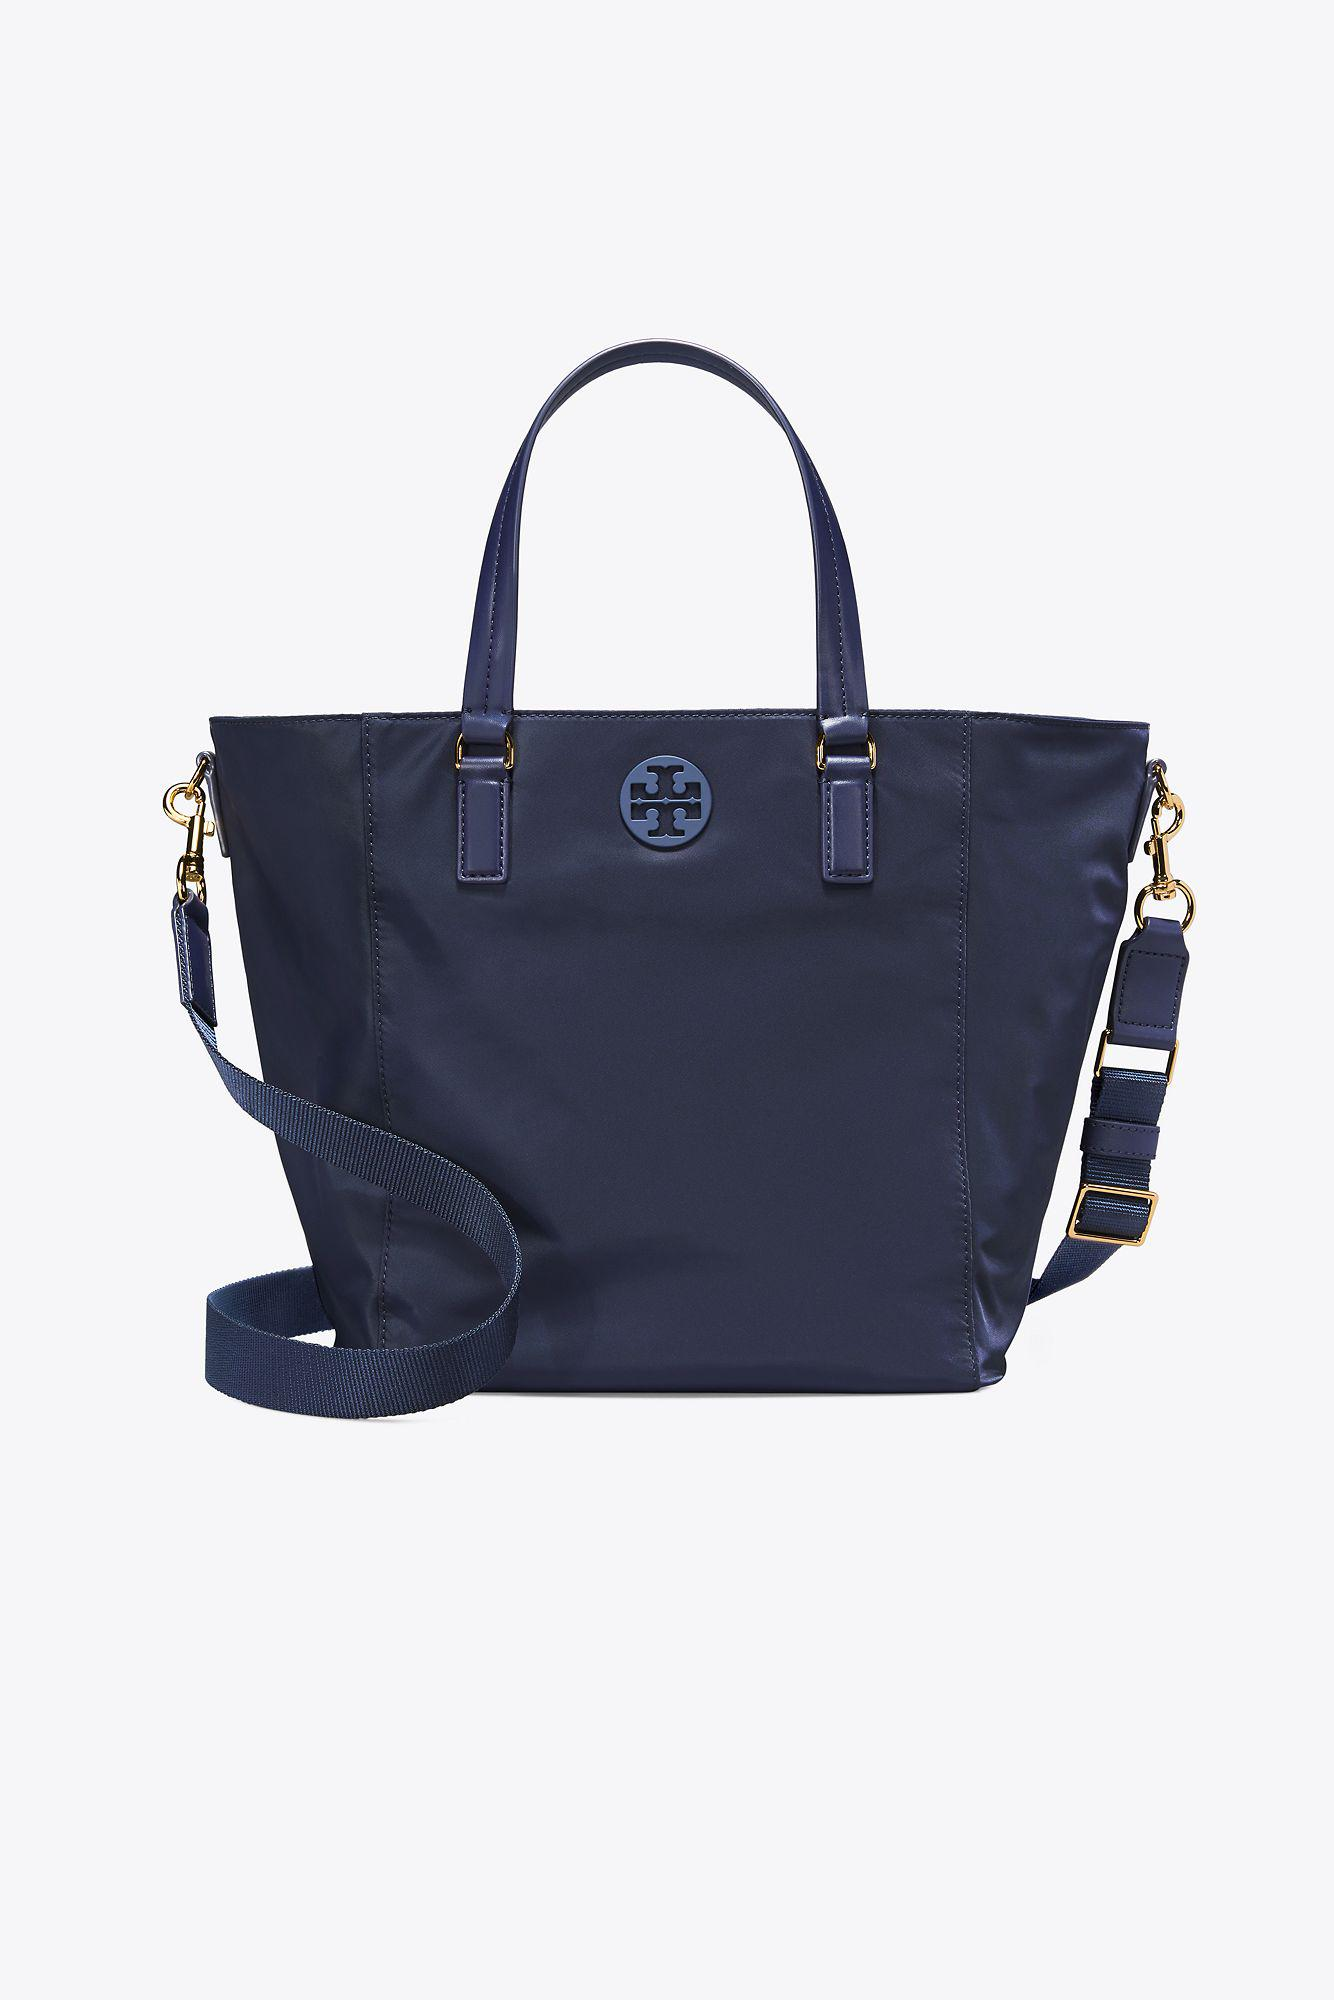 fcceb5808bb2 Tory Burch Tilda Nylon Small Tote in Blue - Save 23% - Lyst